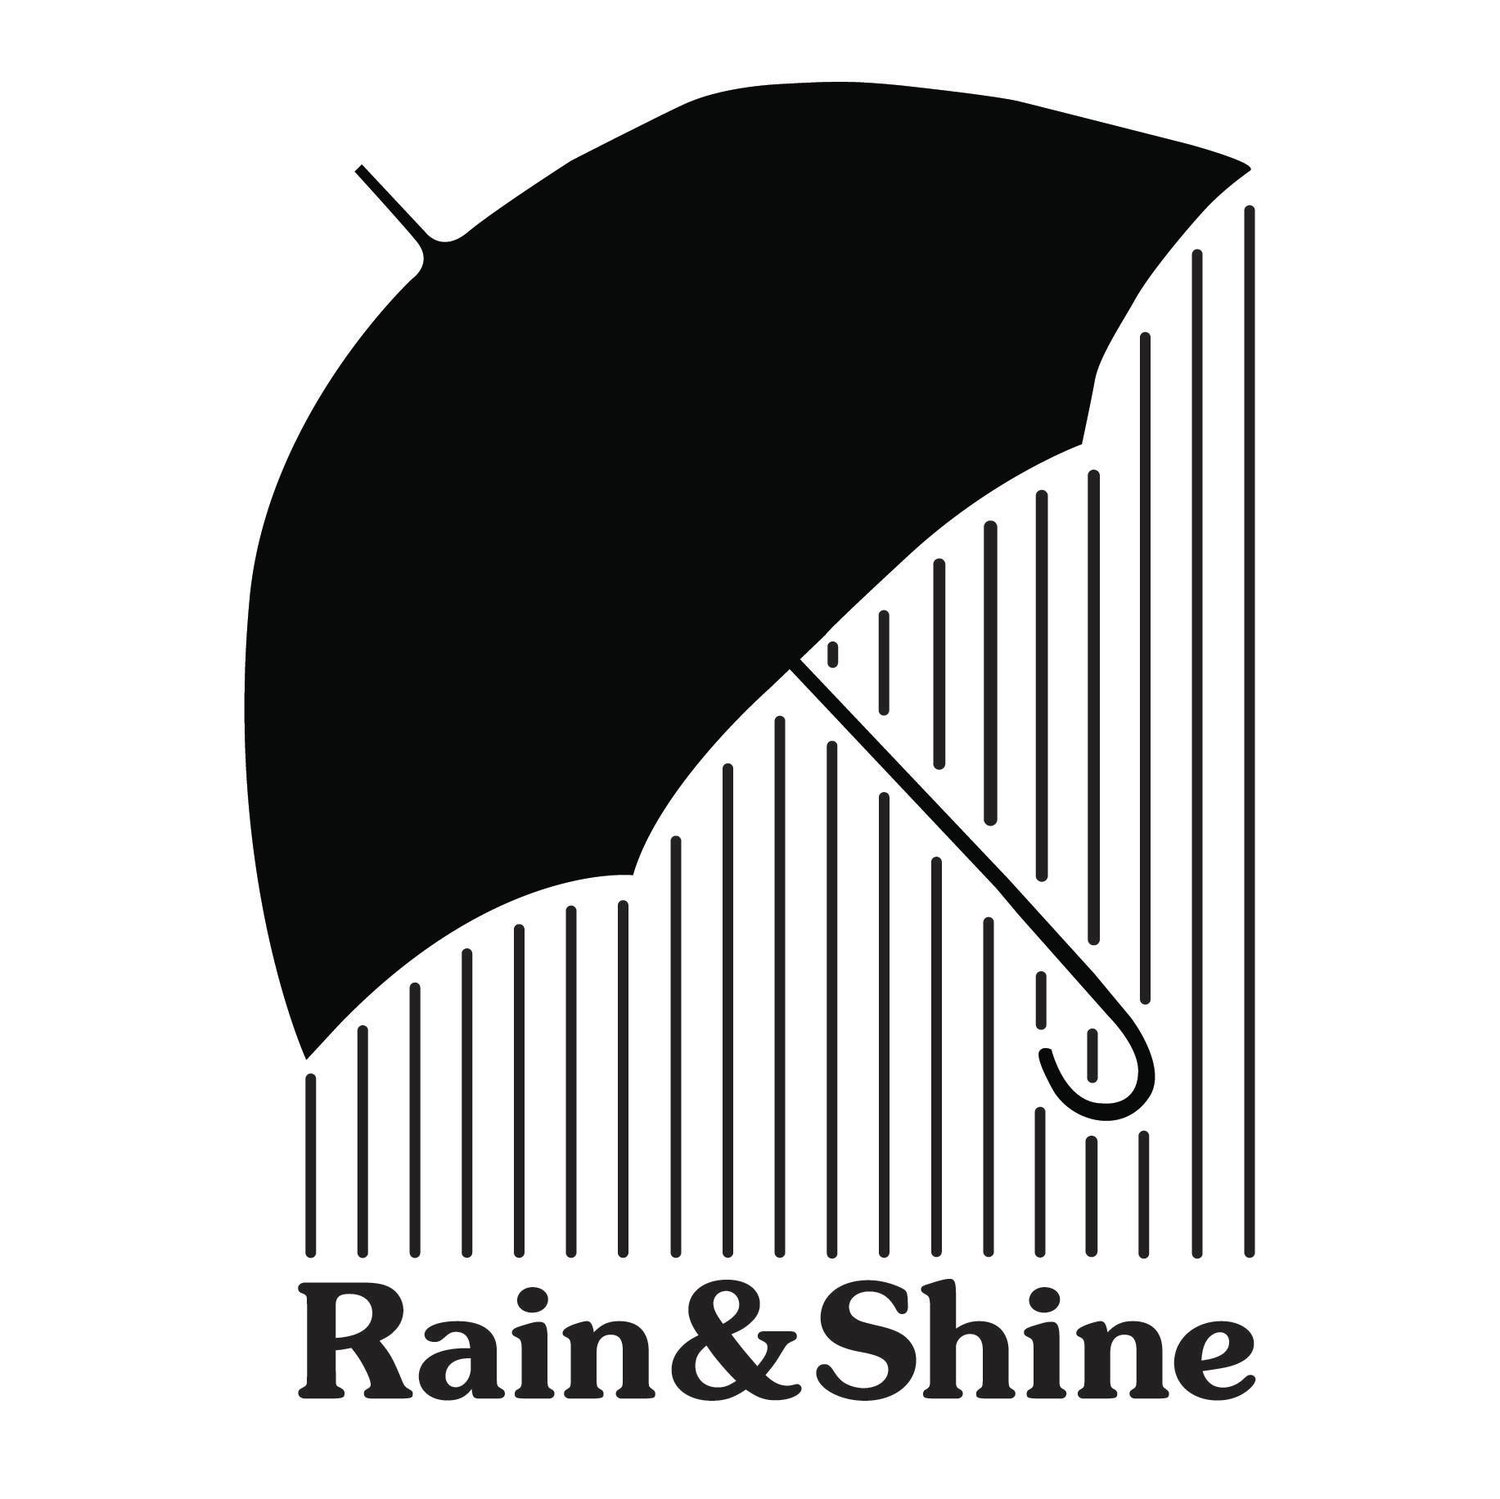 Rain&Shine Records